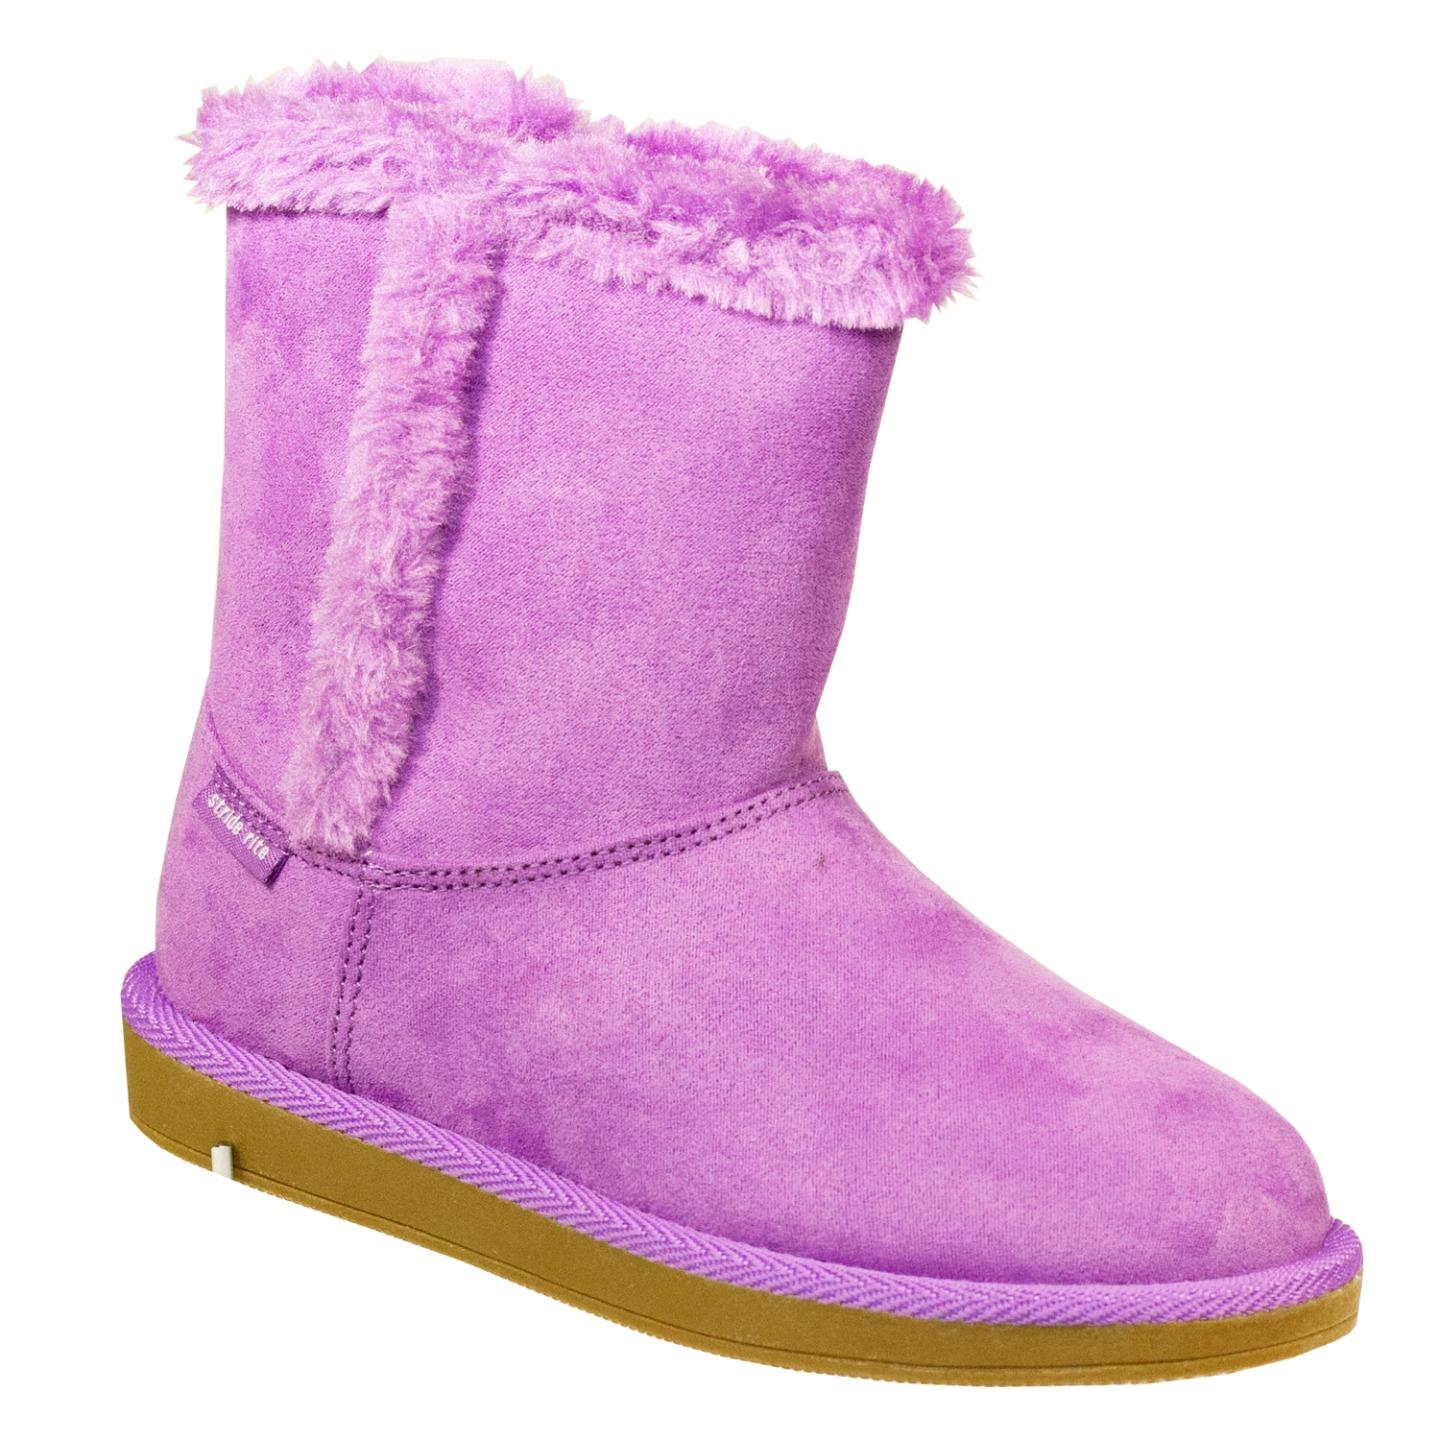 Stride Rite Arabella Girls Boot, Purple (Toddler, Little Kid) 11 M by Stride Rite